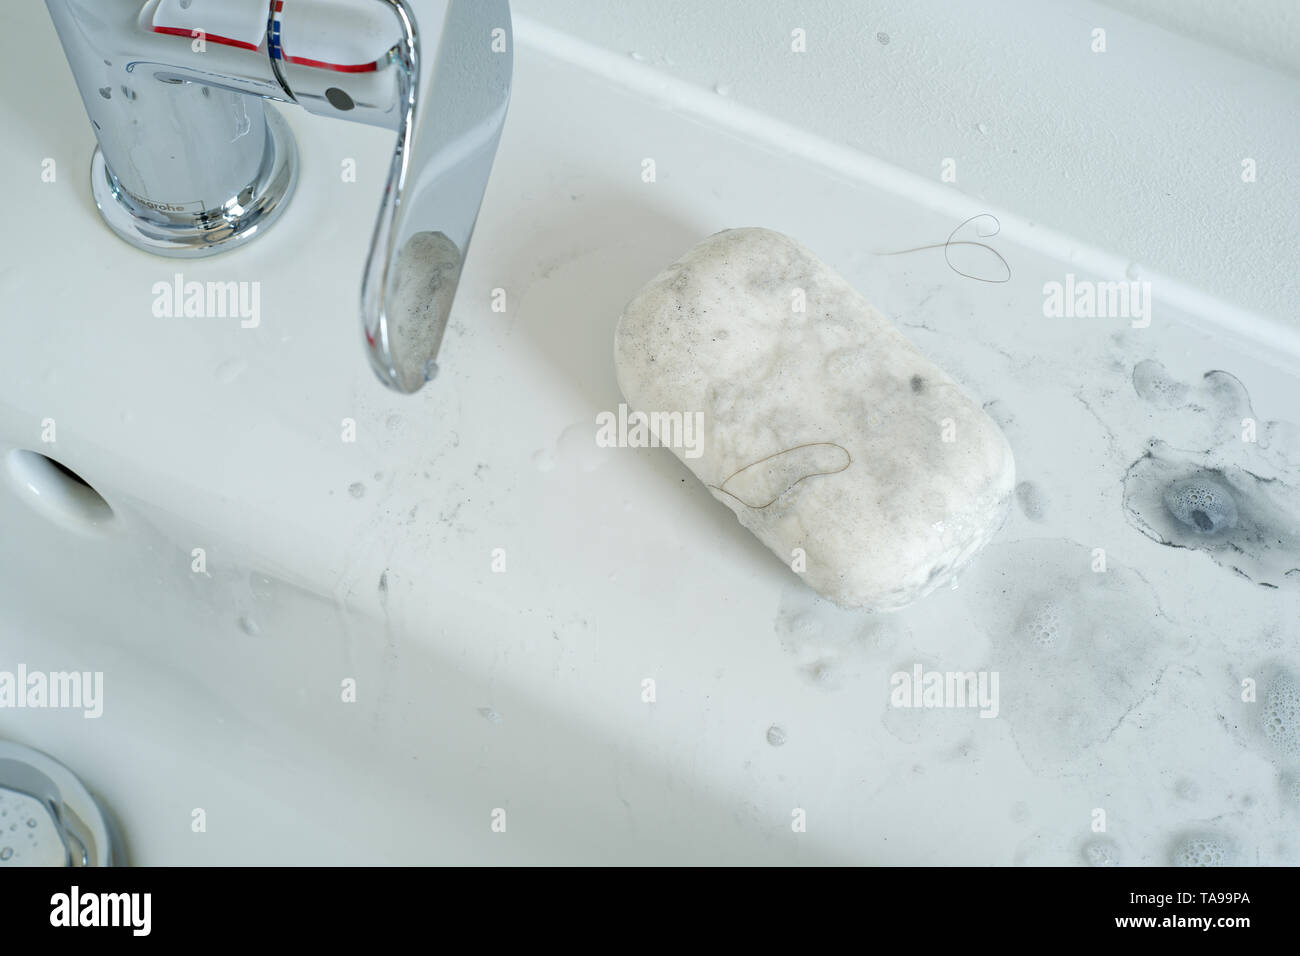 Dirty soap used to clean of heavy dirt and grease by the side of a sink. - Stock Image